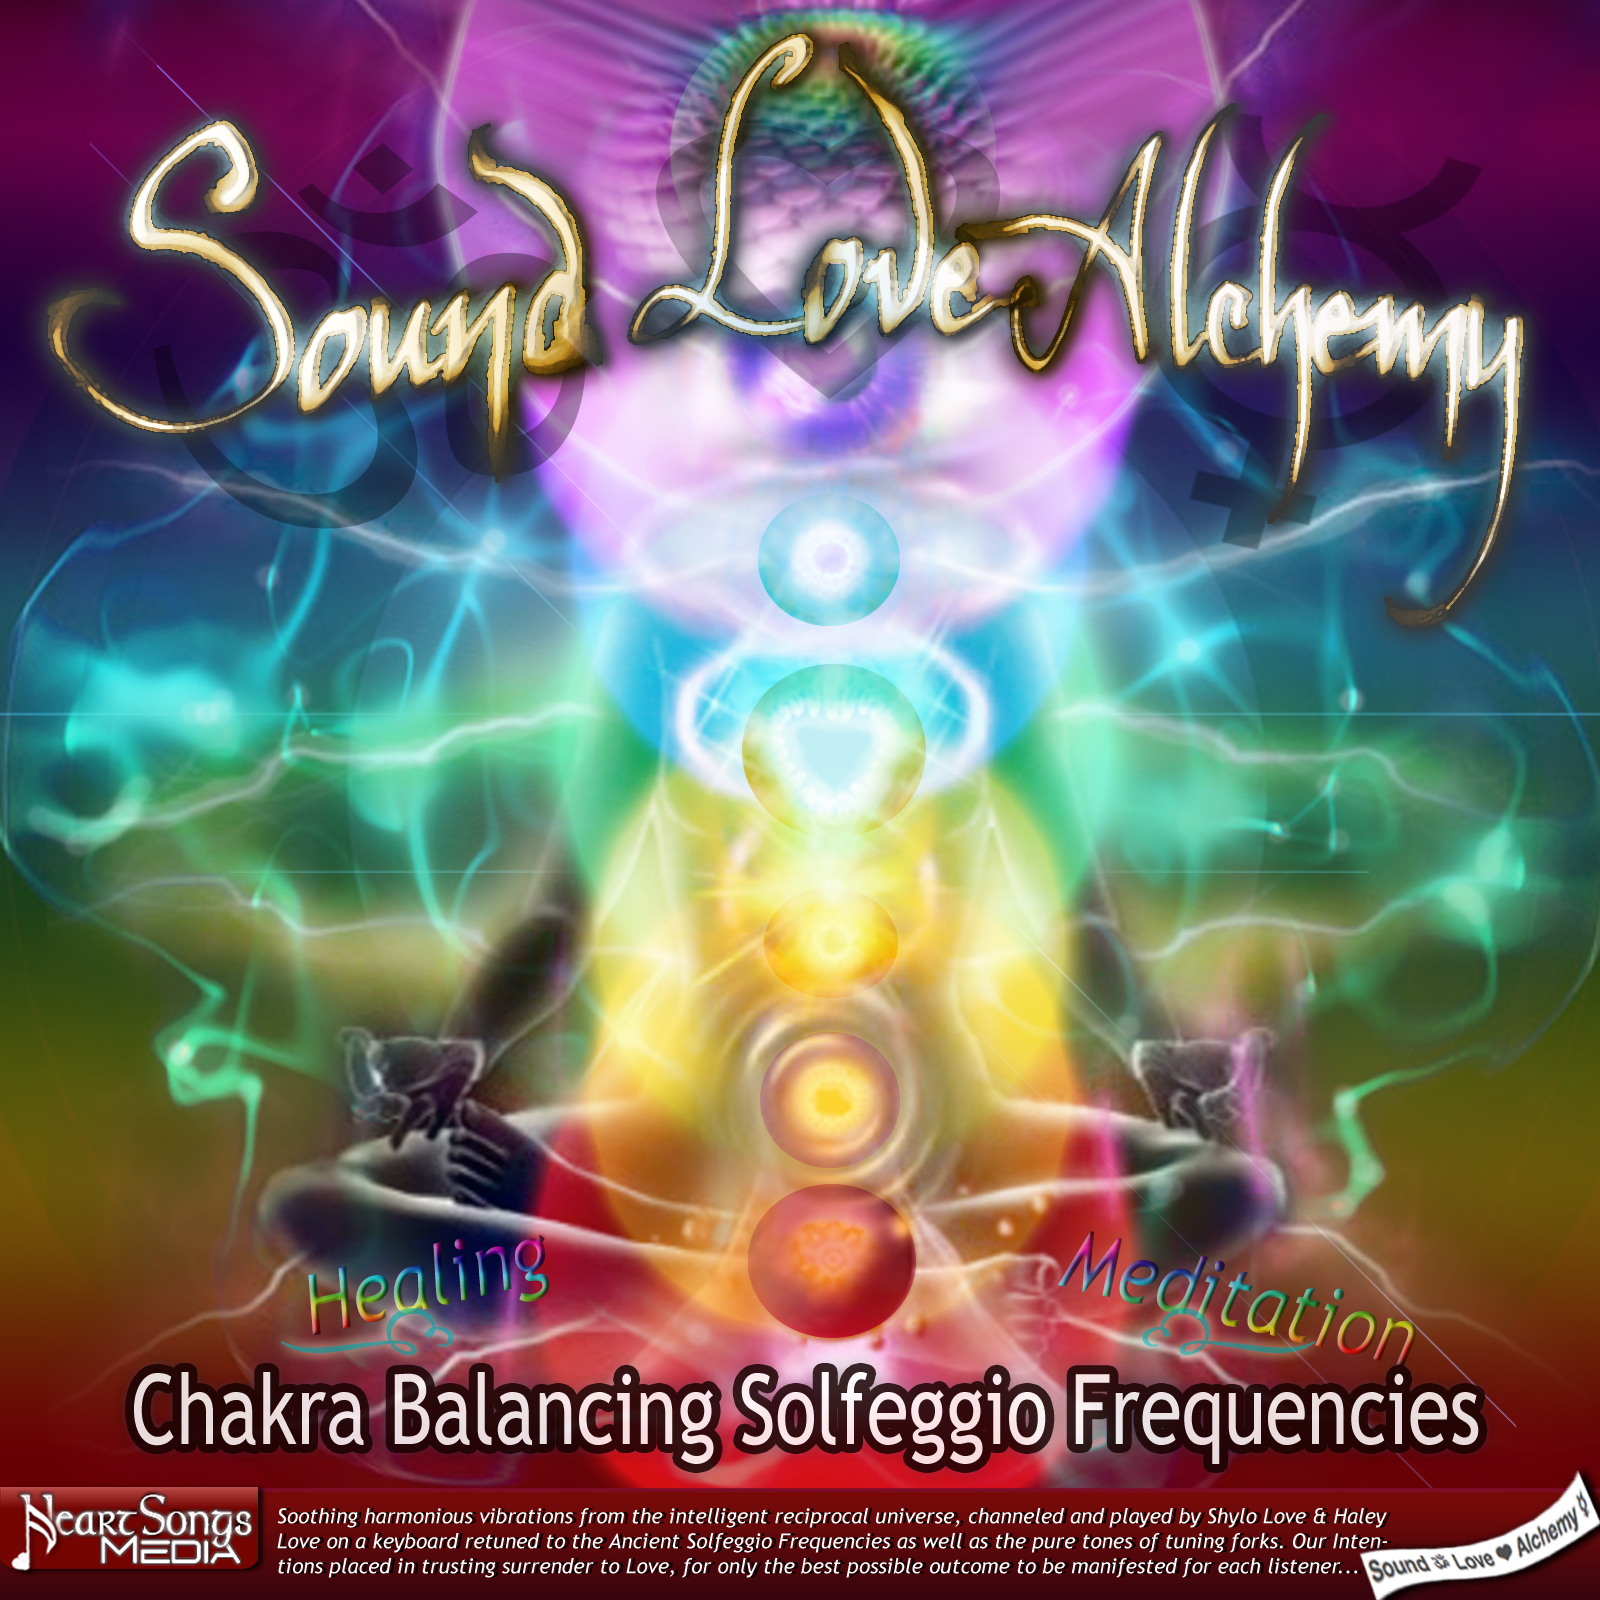 Chakra Balancing Solfeggio Frequencies - Healing & Meditation